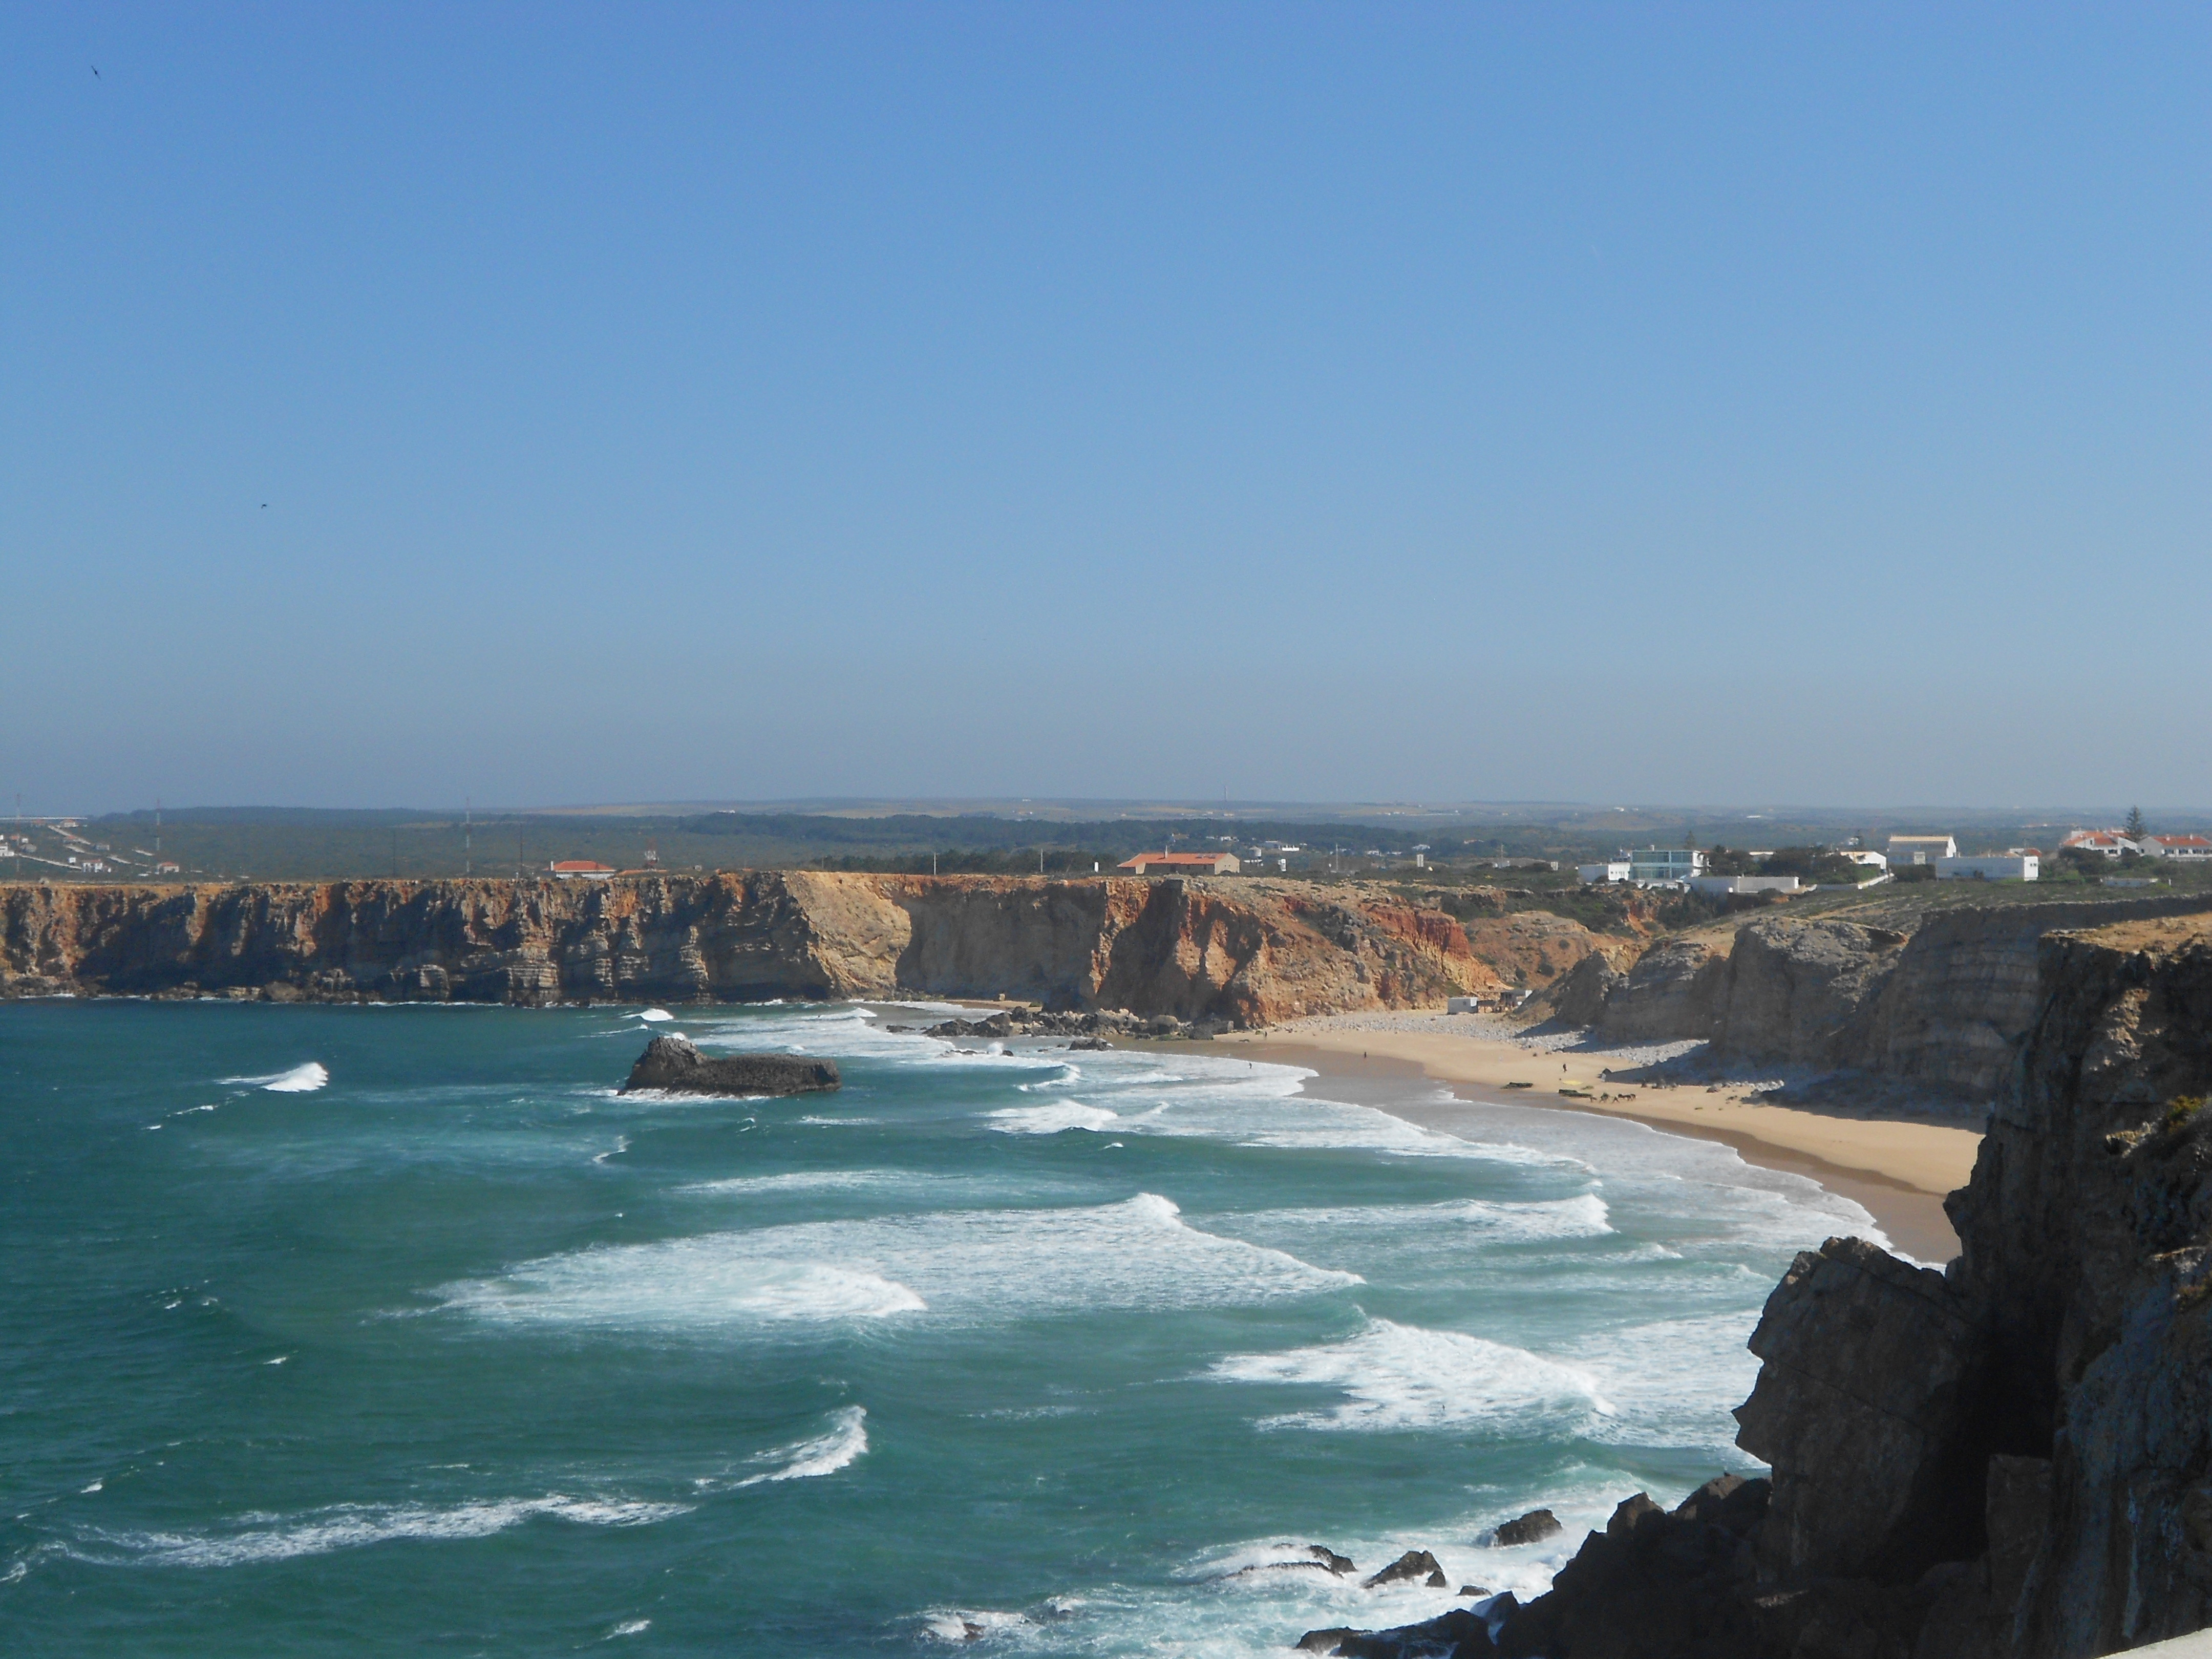 Views from the Fortaleza de Sagres